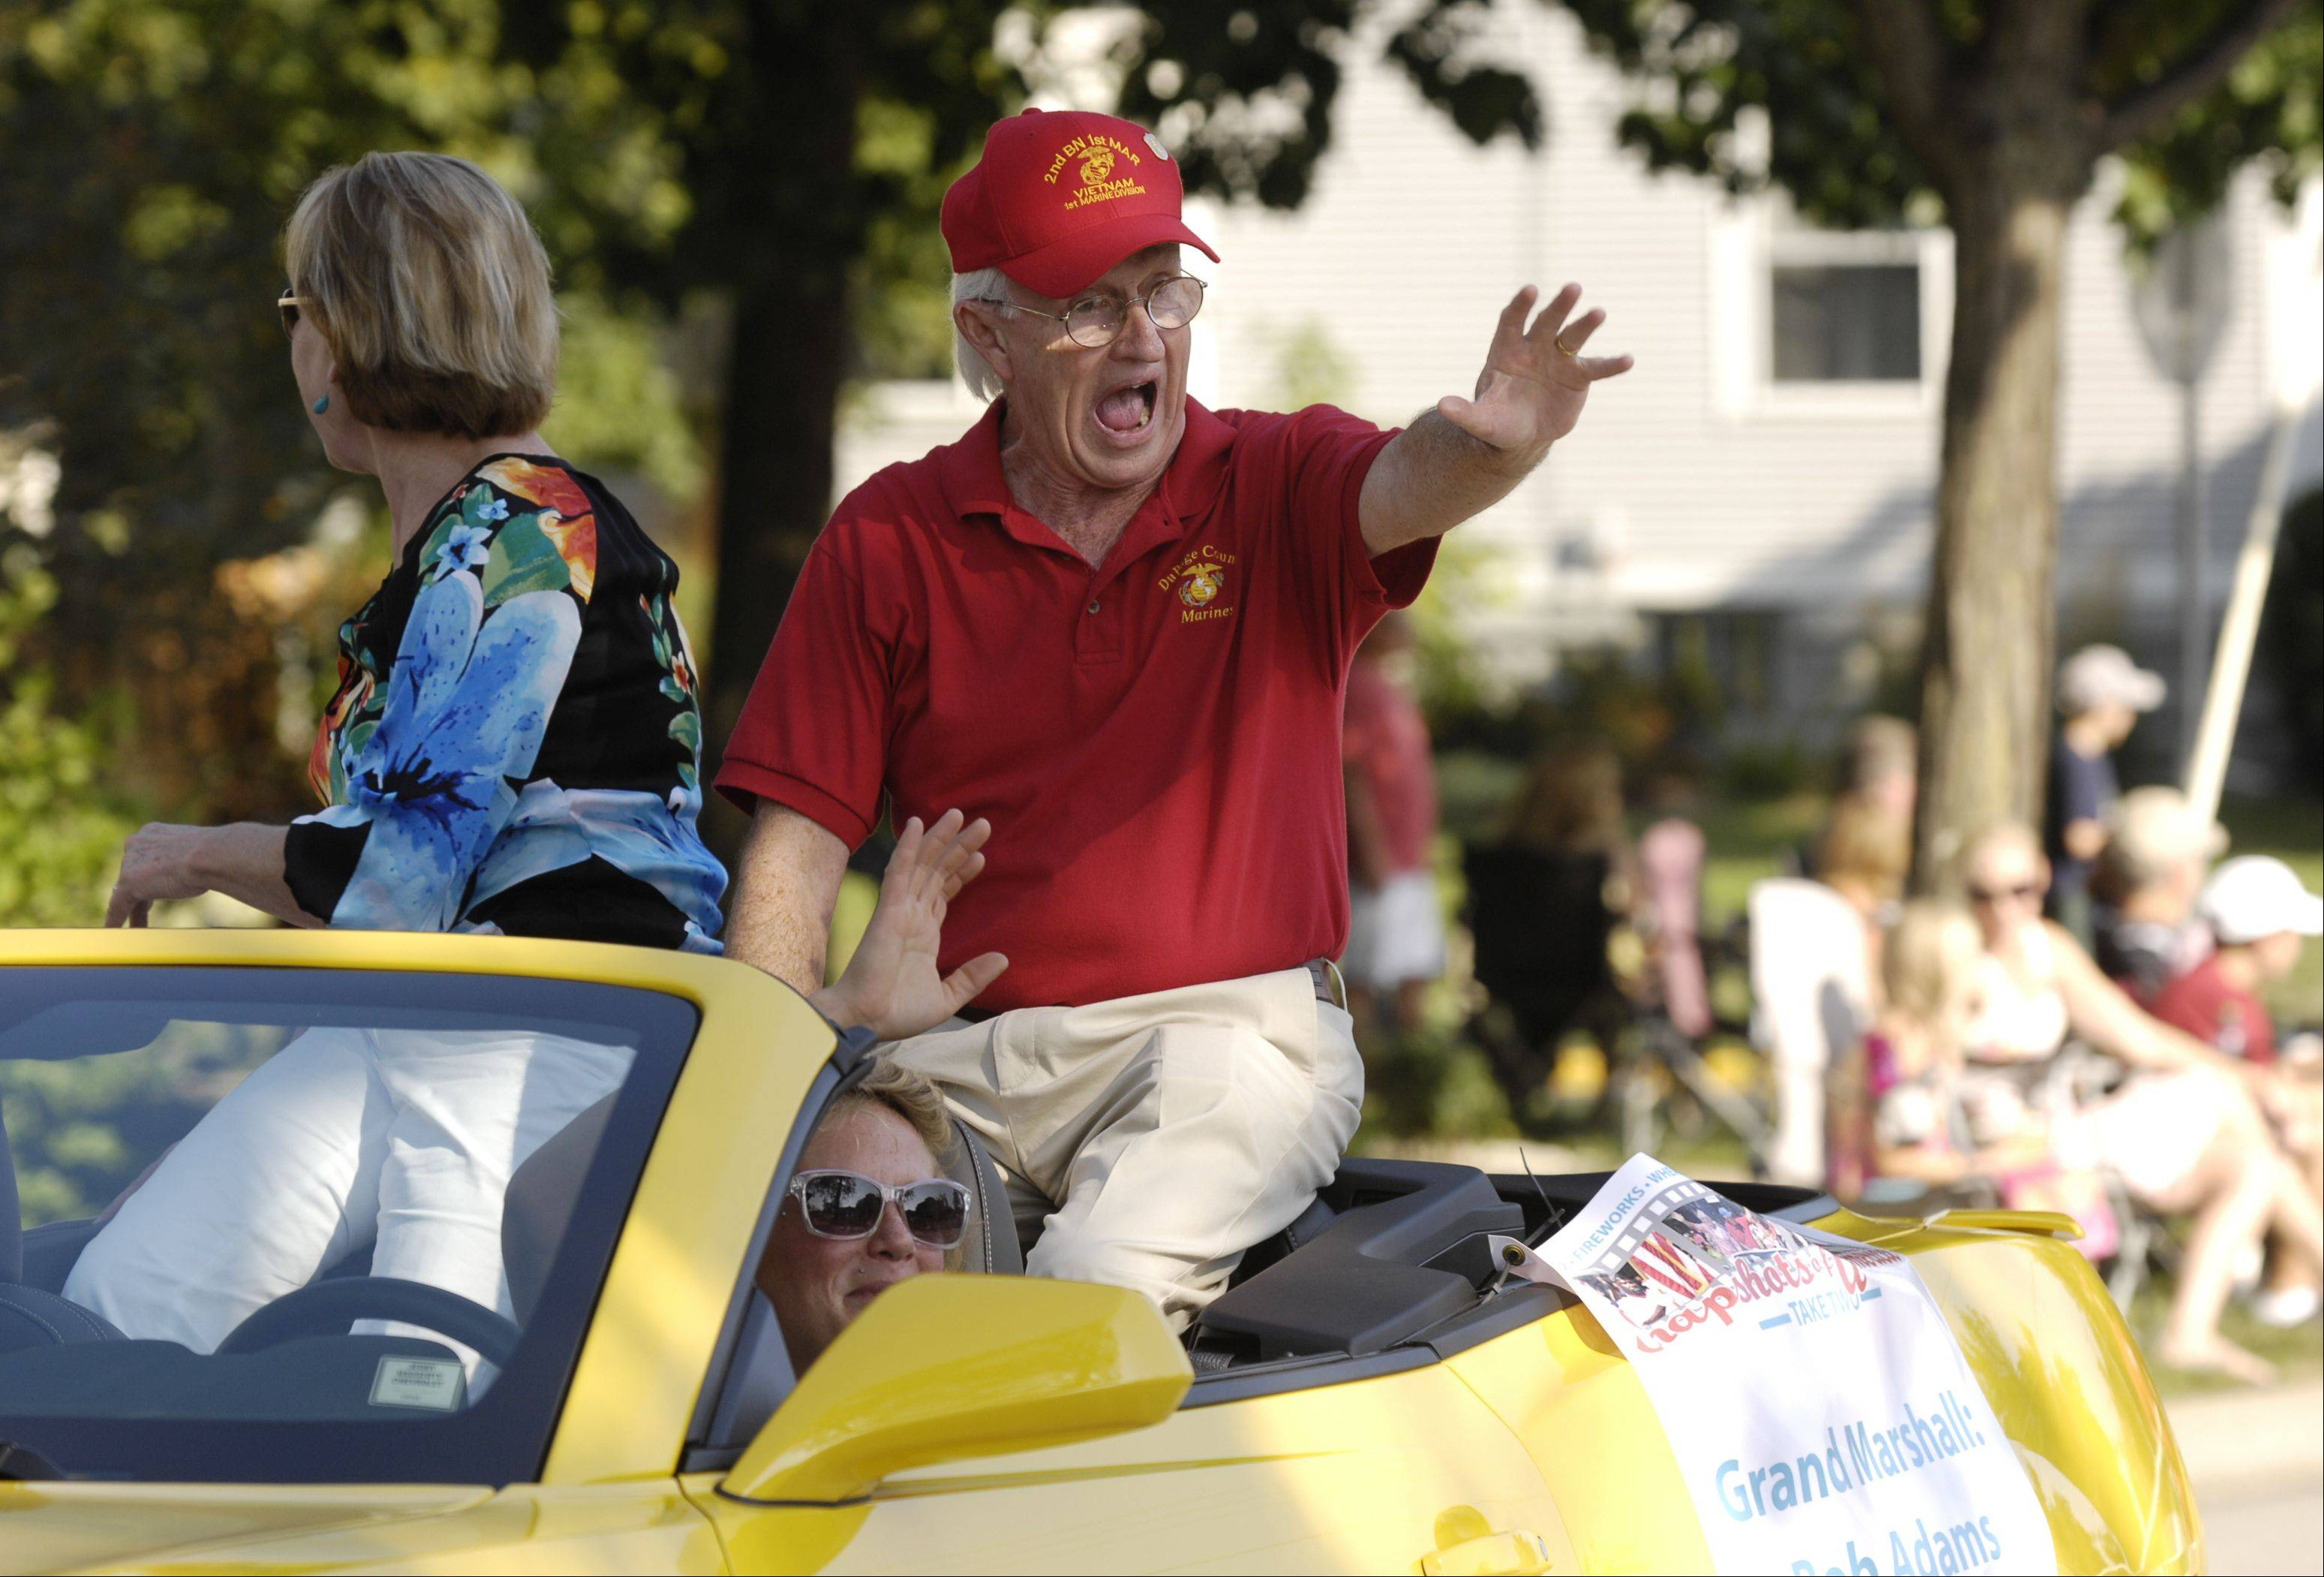 Bob Adams, Grand Marshall of the Wheaton Labor Day Parade, waves to the crowd as the parade heads down Main Street